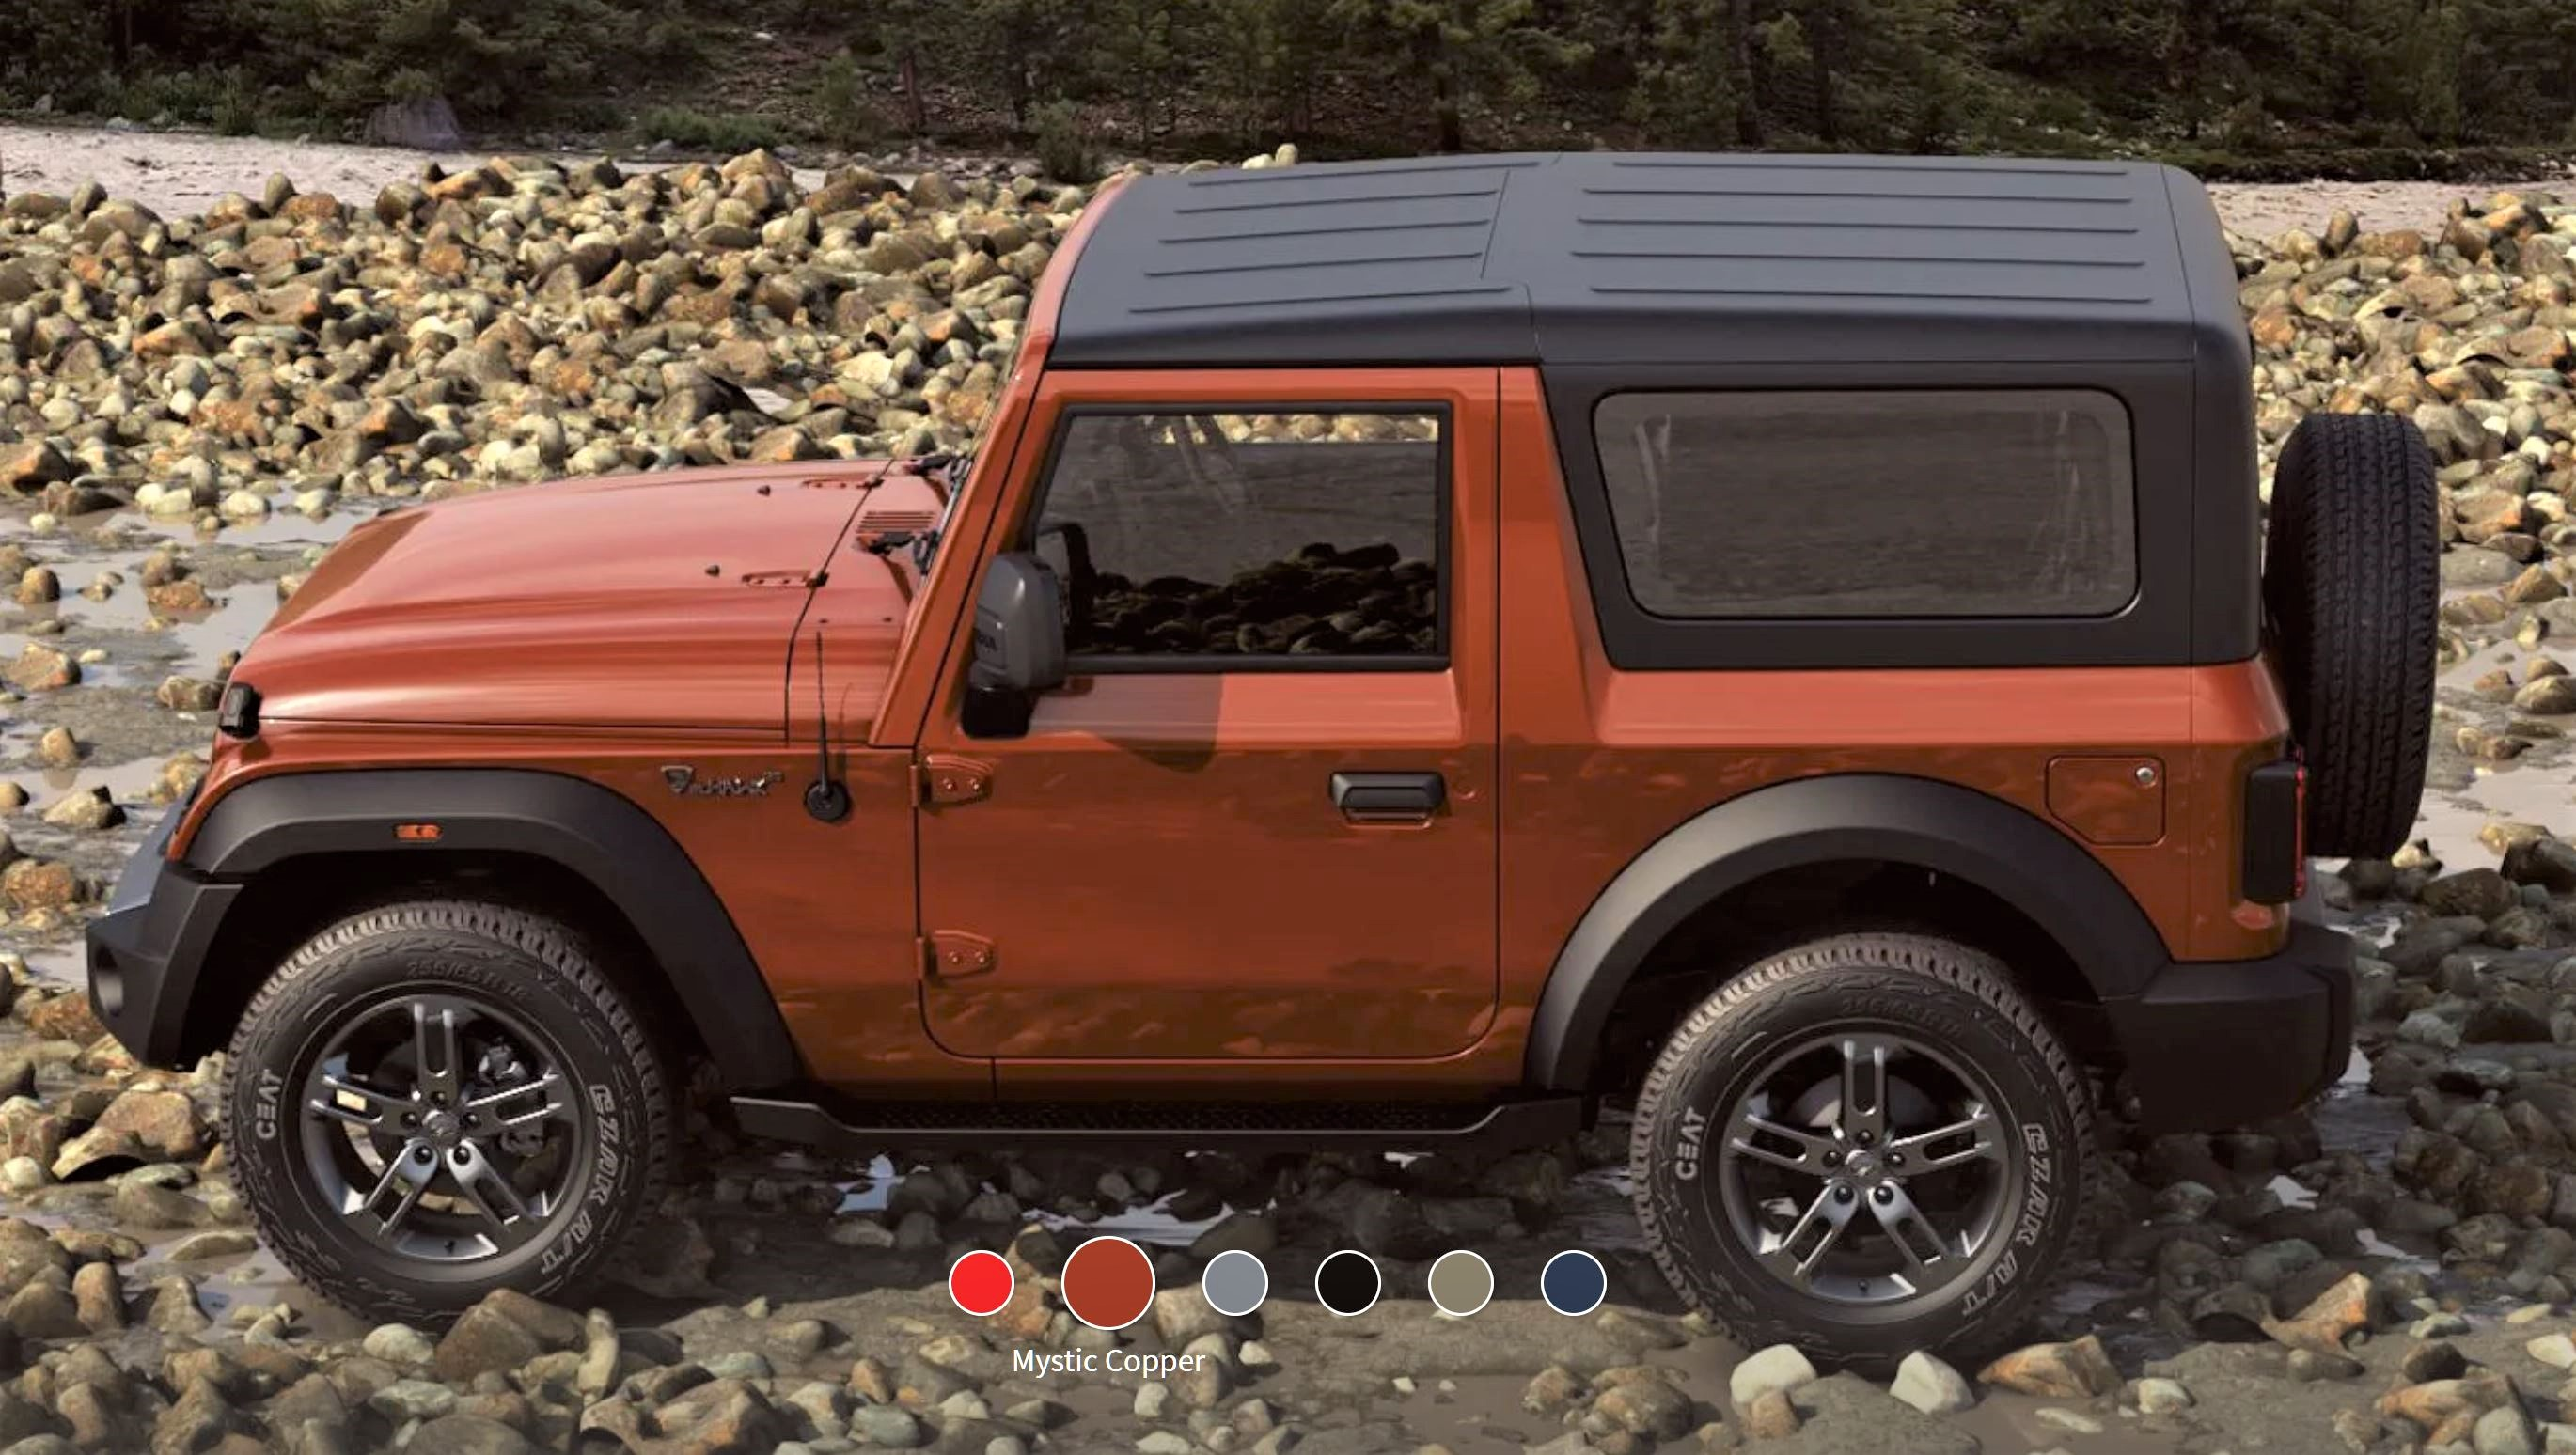 New Mahindra Thar Mystic Copper Side View